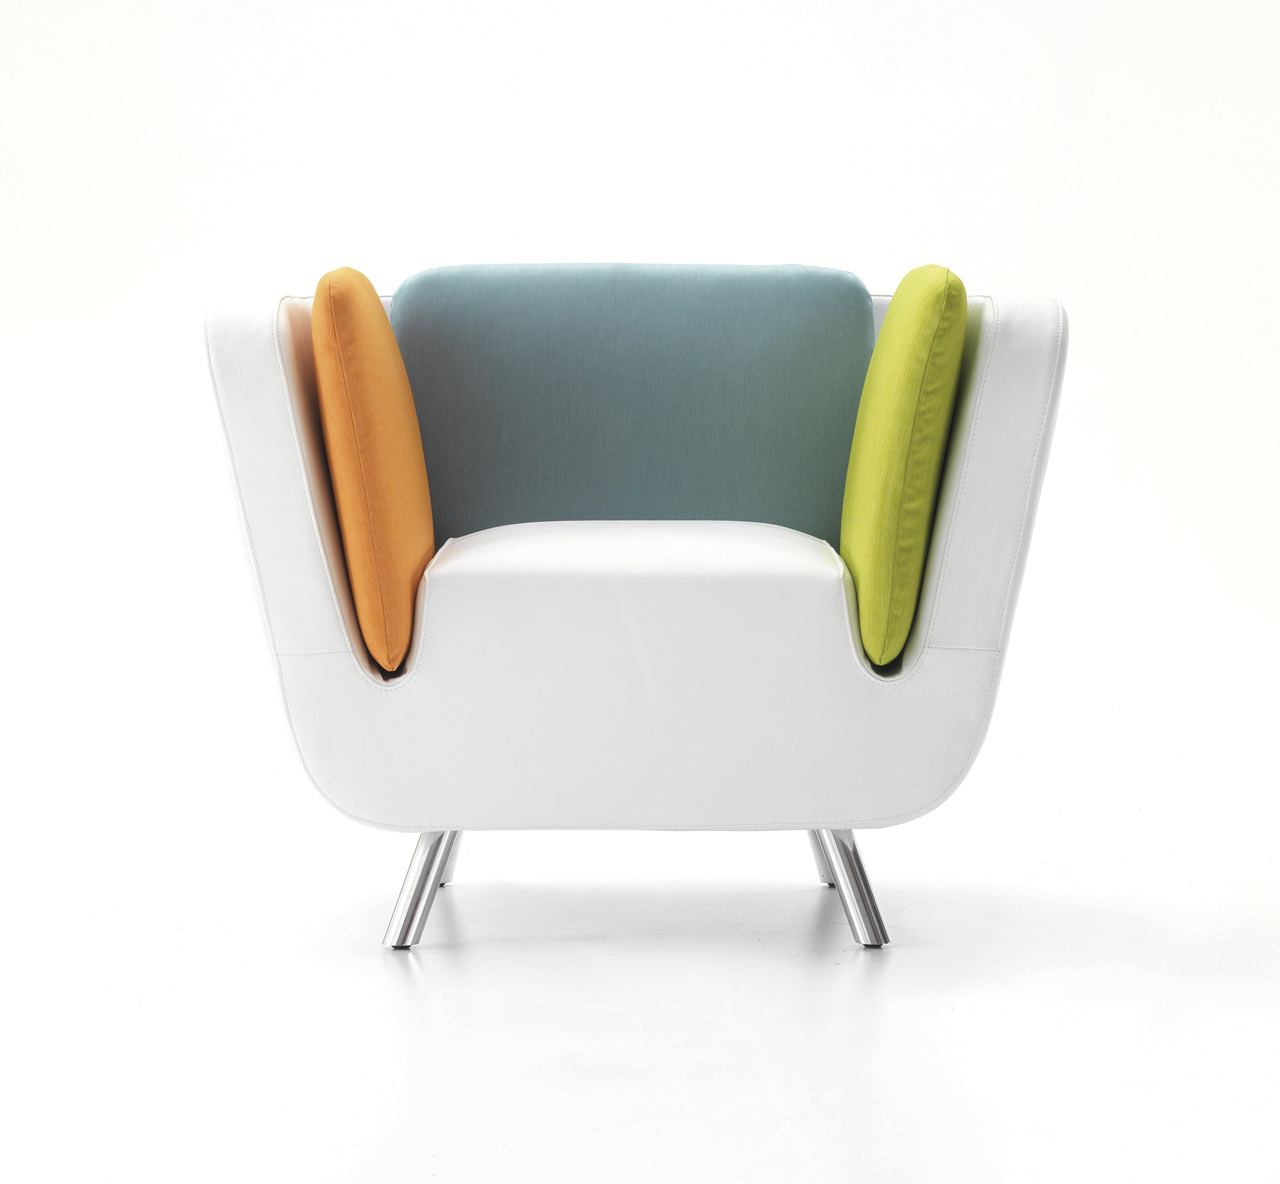 NOOK Lounge Chair & Matching Luggage by Karim Rashid Design Milk